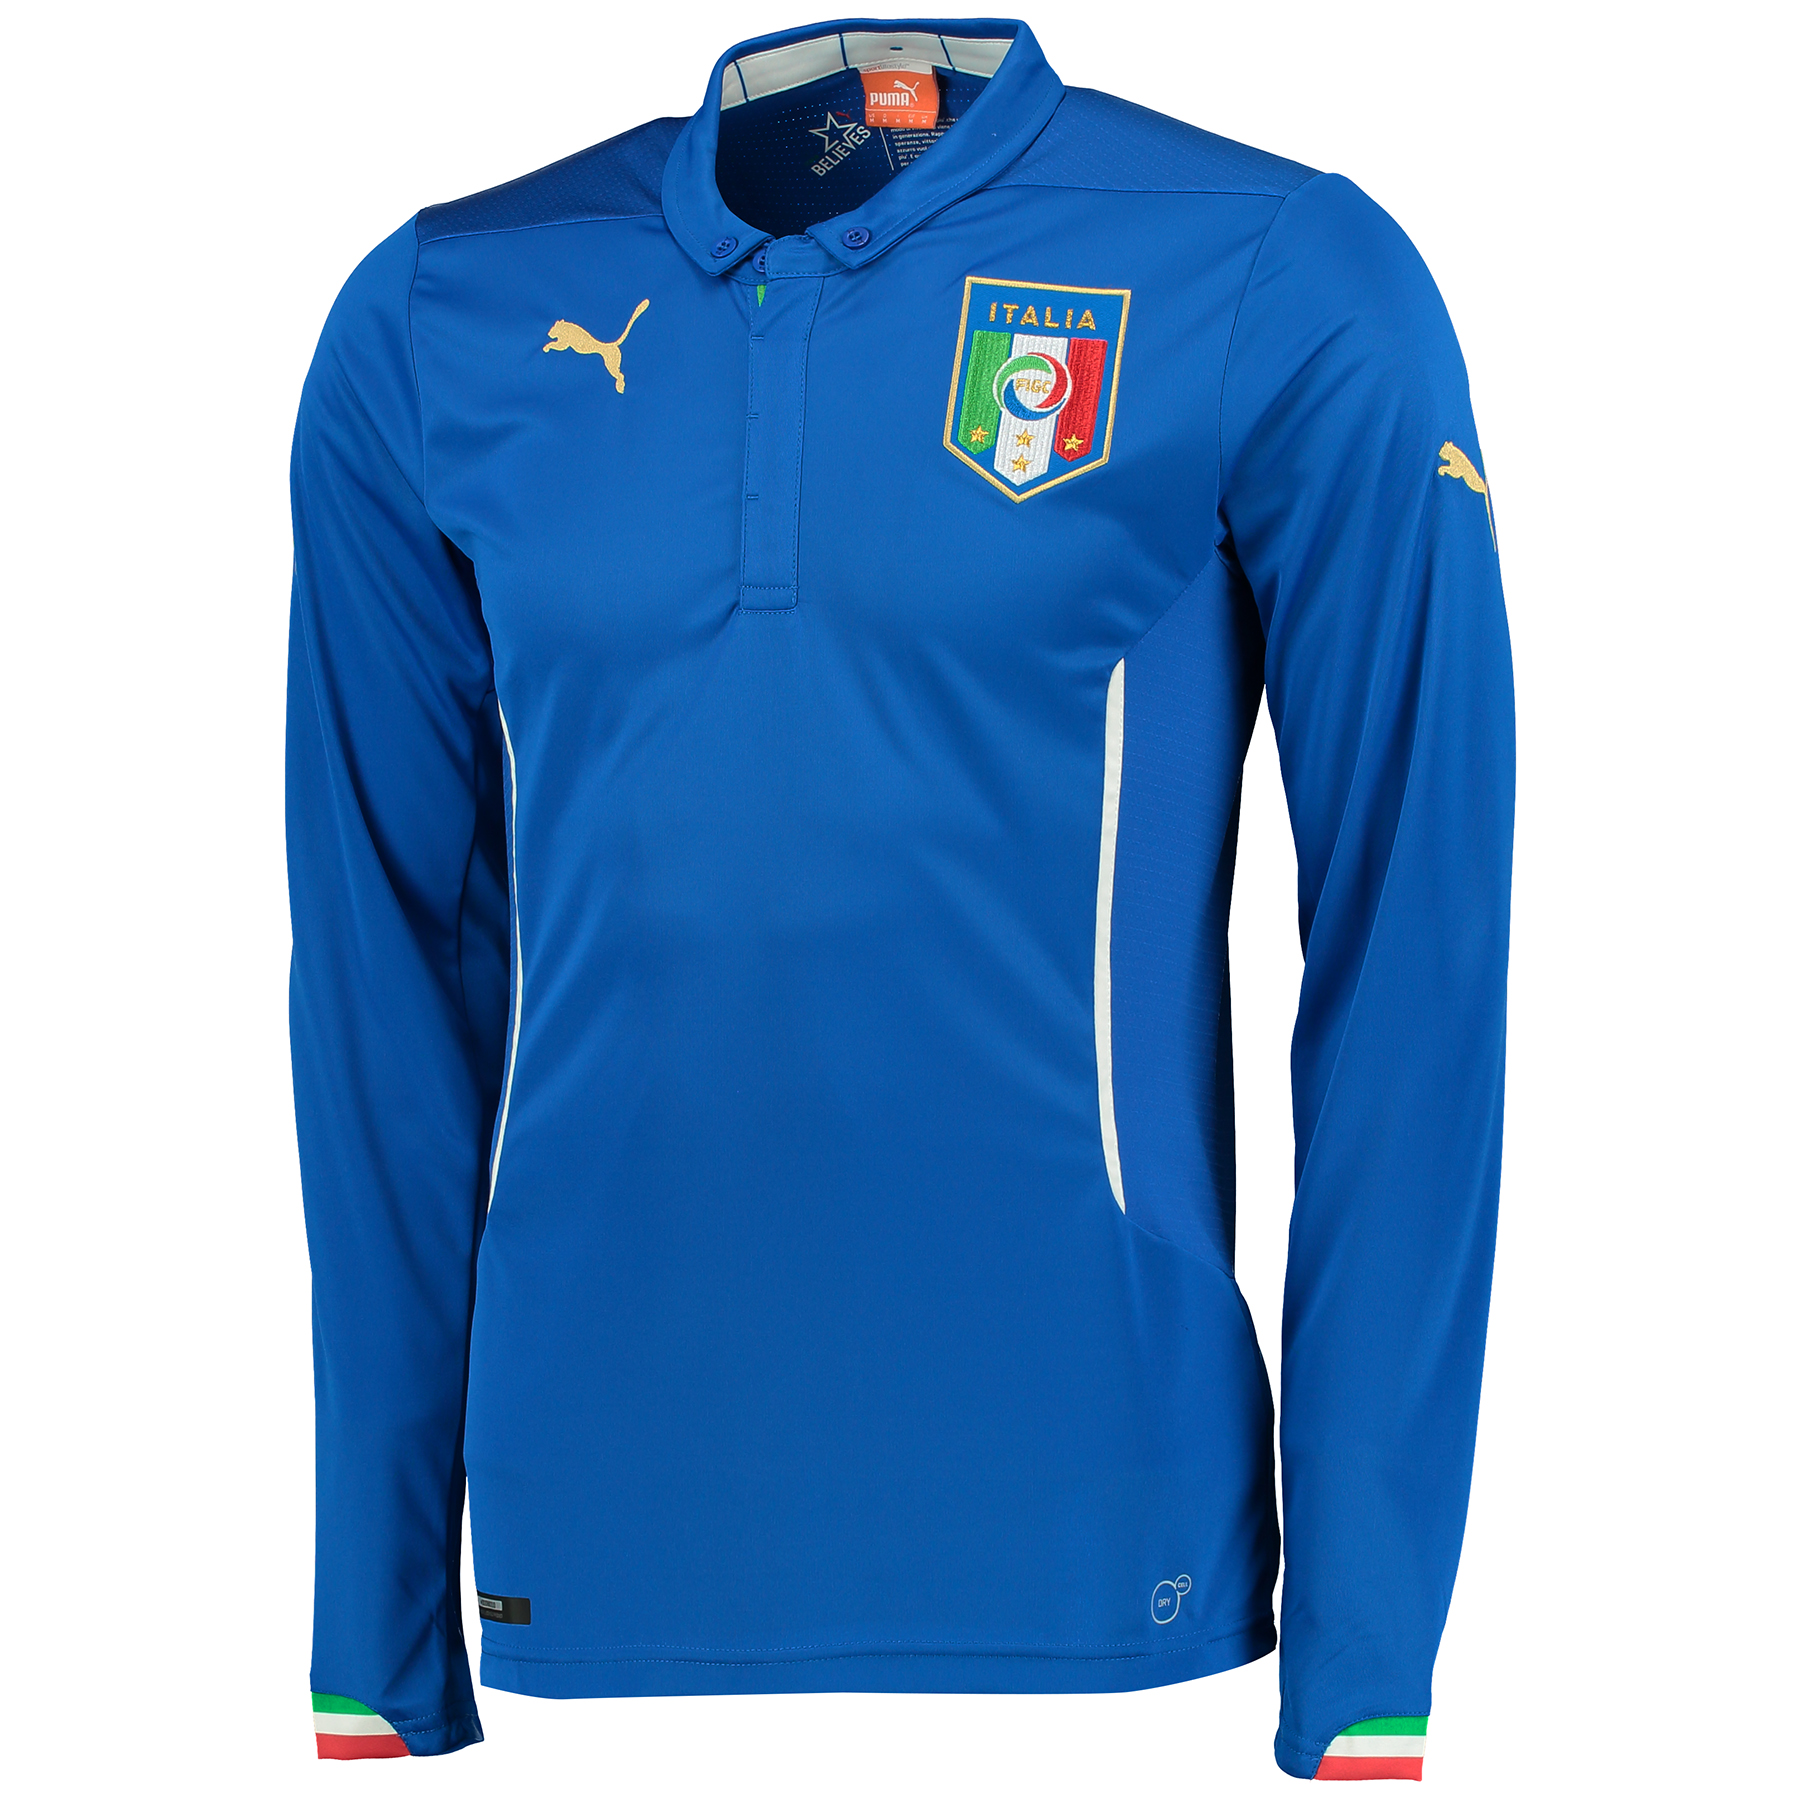 Italy Home Shirt 2013/14 - Long Sleeved